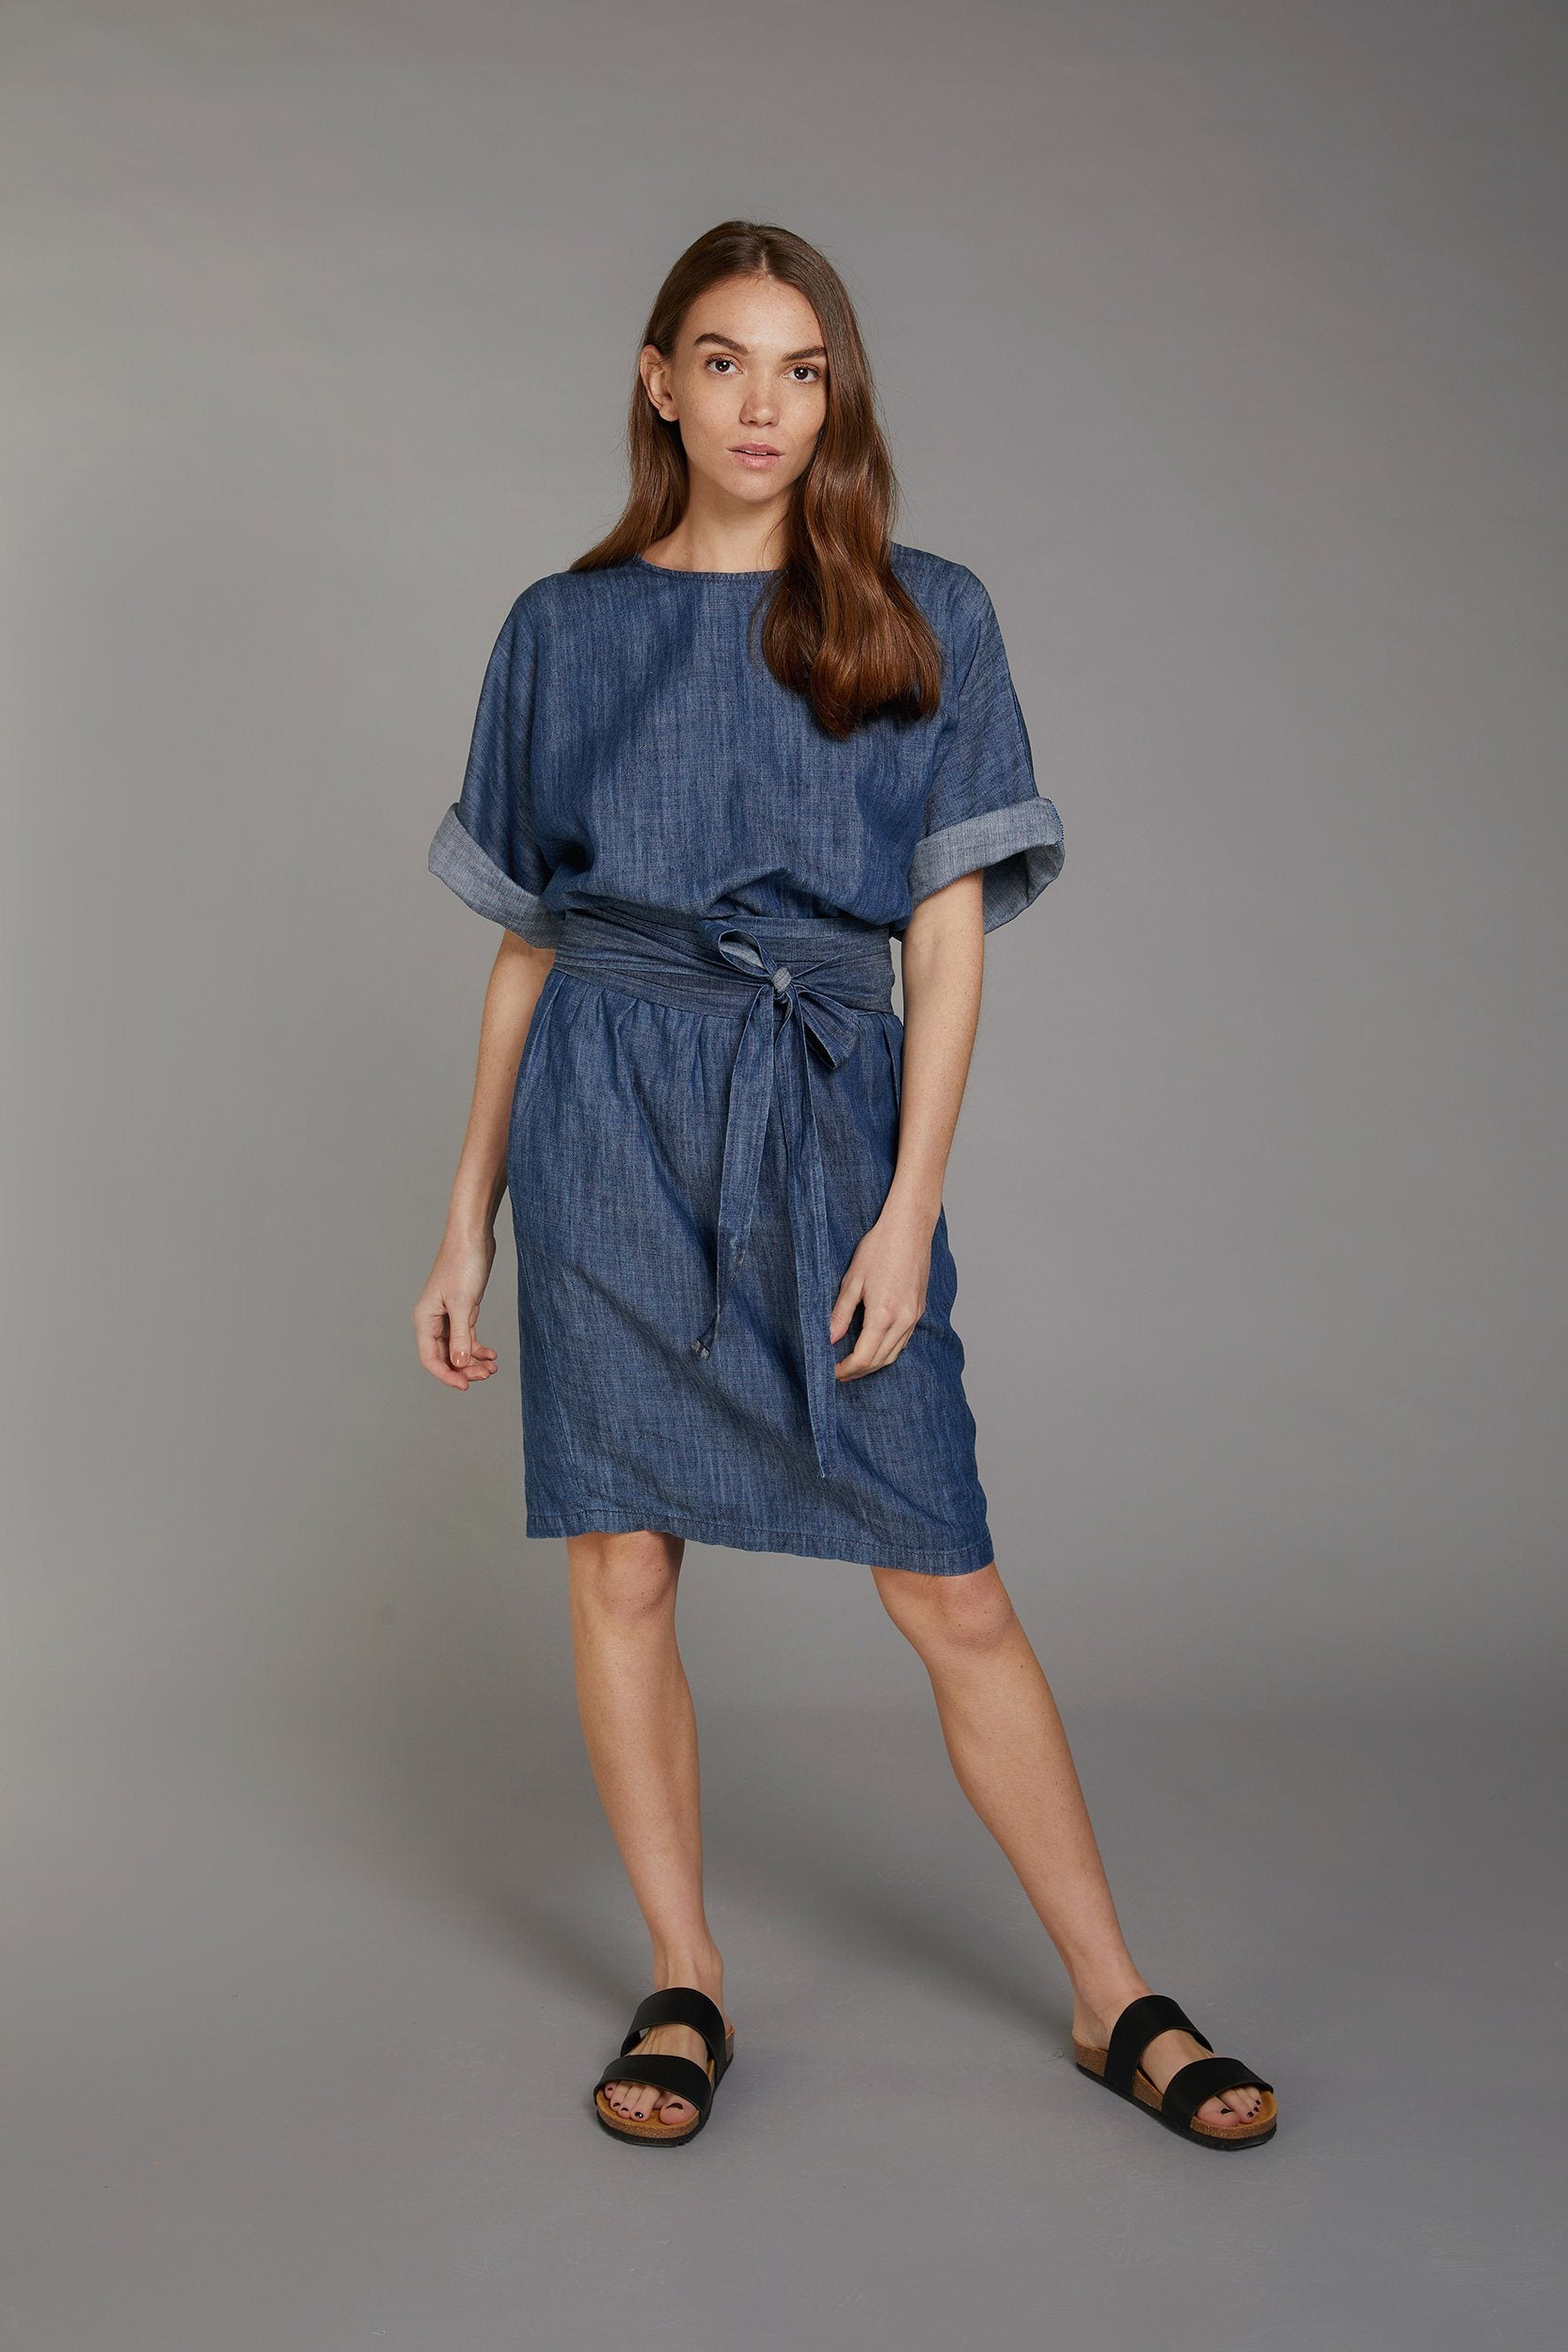 OBI ONE Tencel Linen Dress